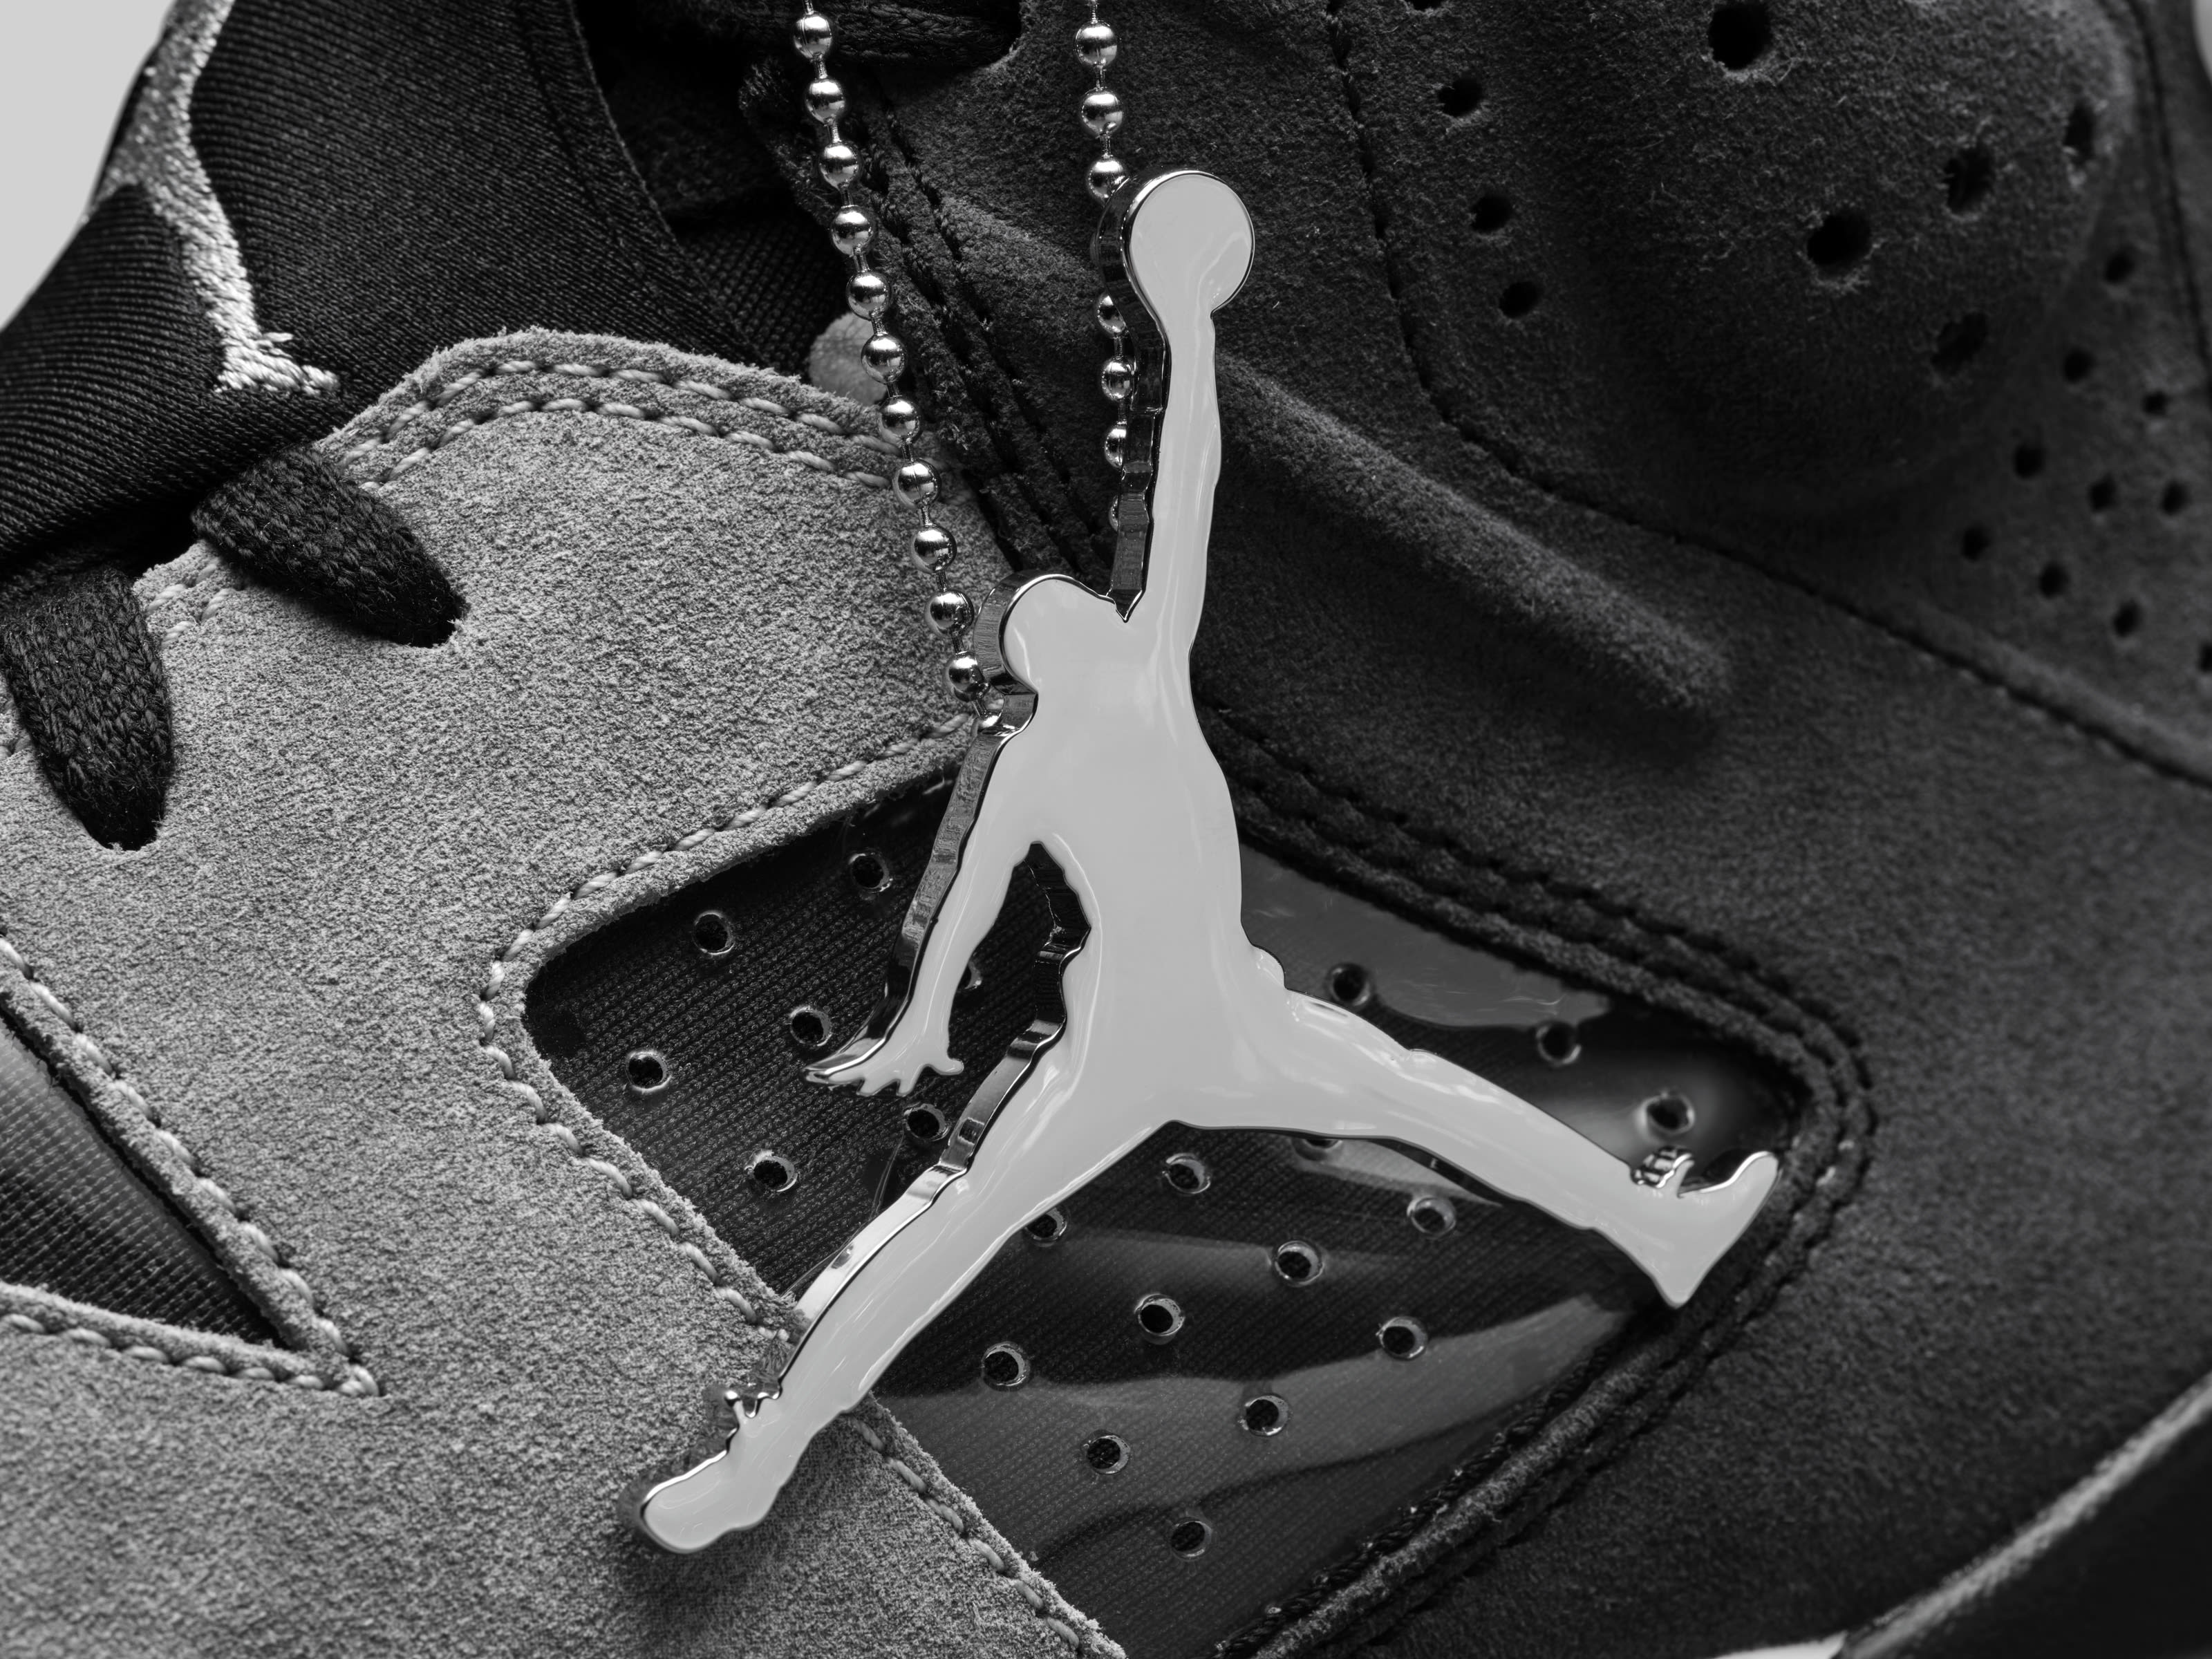 Air Jordan 6 Retro Women's CK6635-001 Hangtag